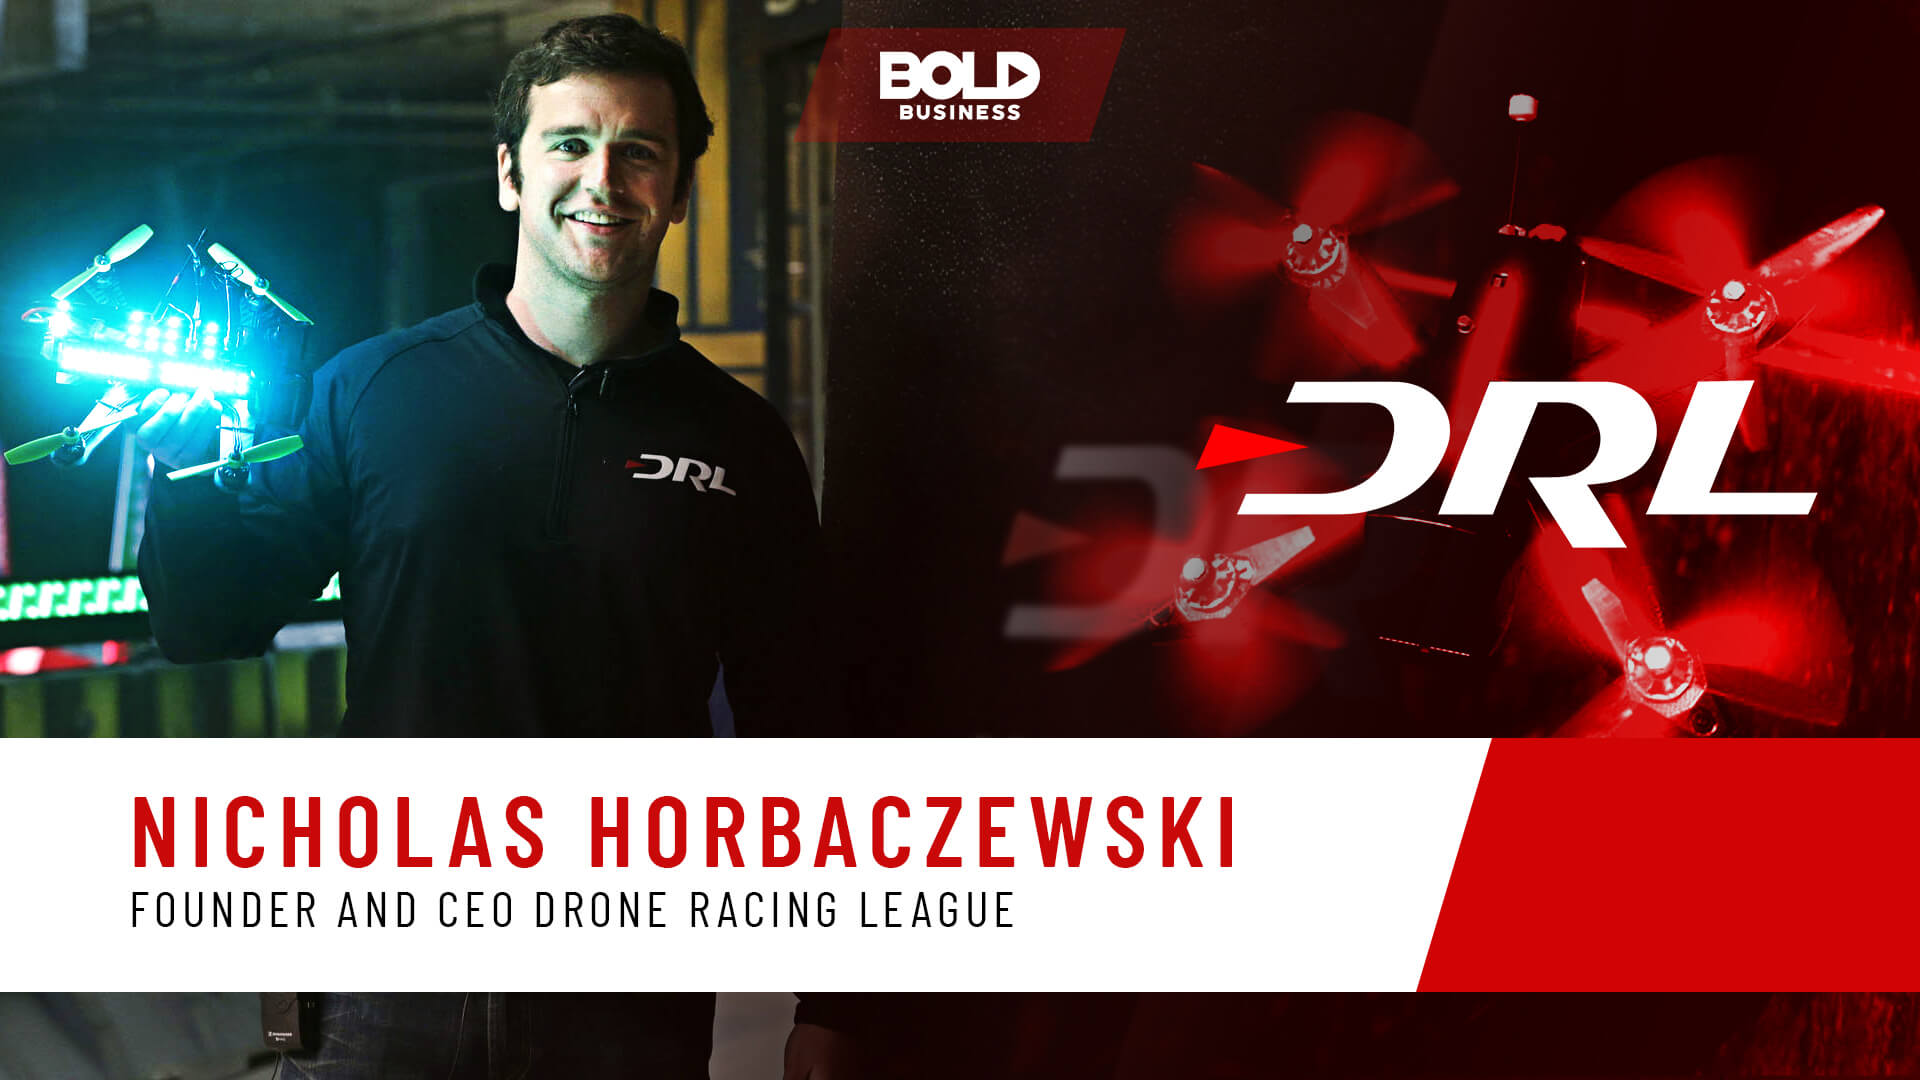 Bold Leader Spotlight Nicholas Horbaczewski Video Thumbnail